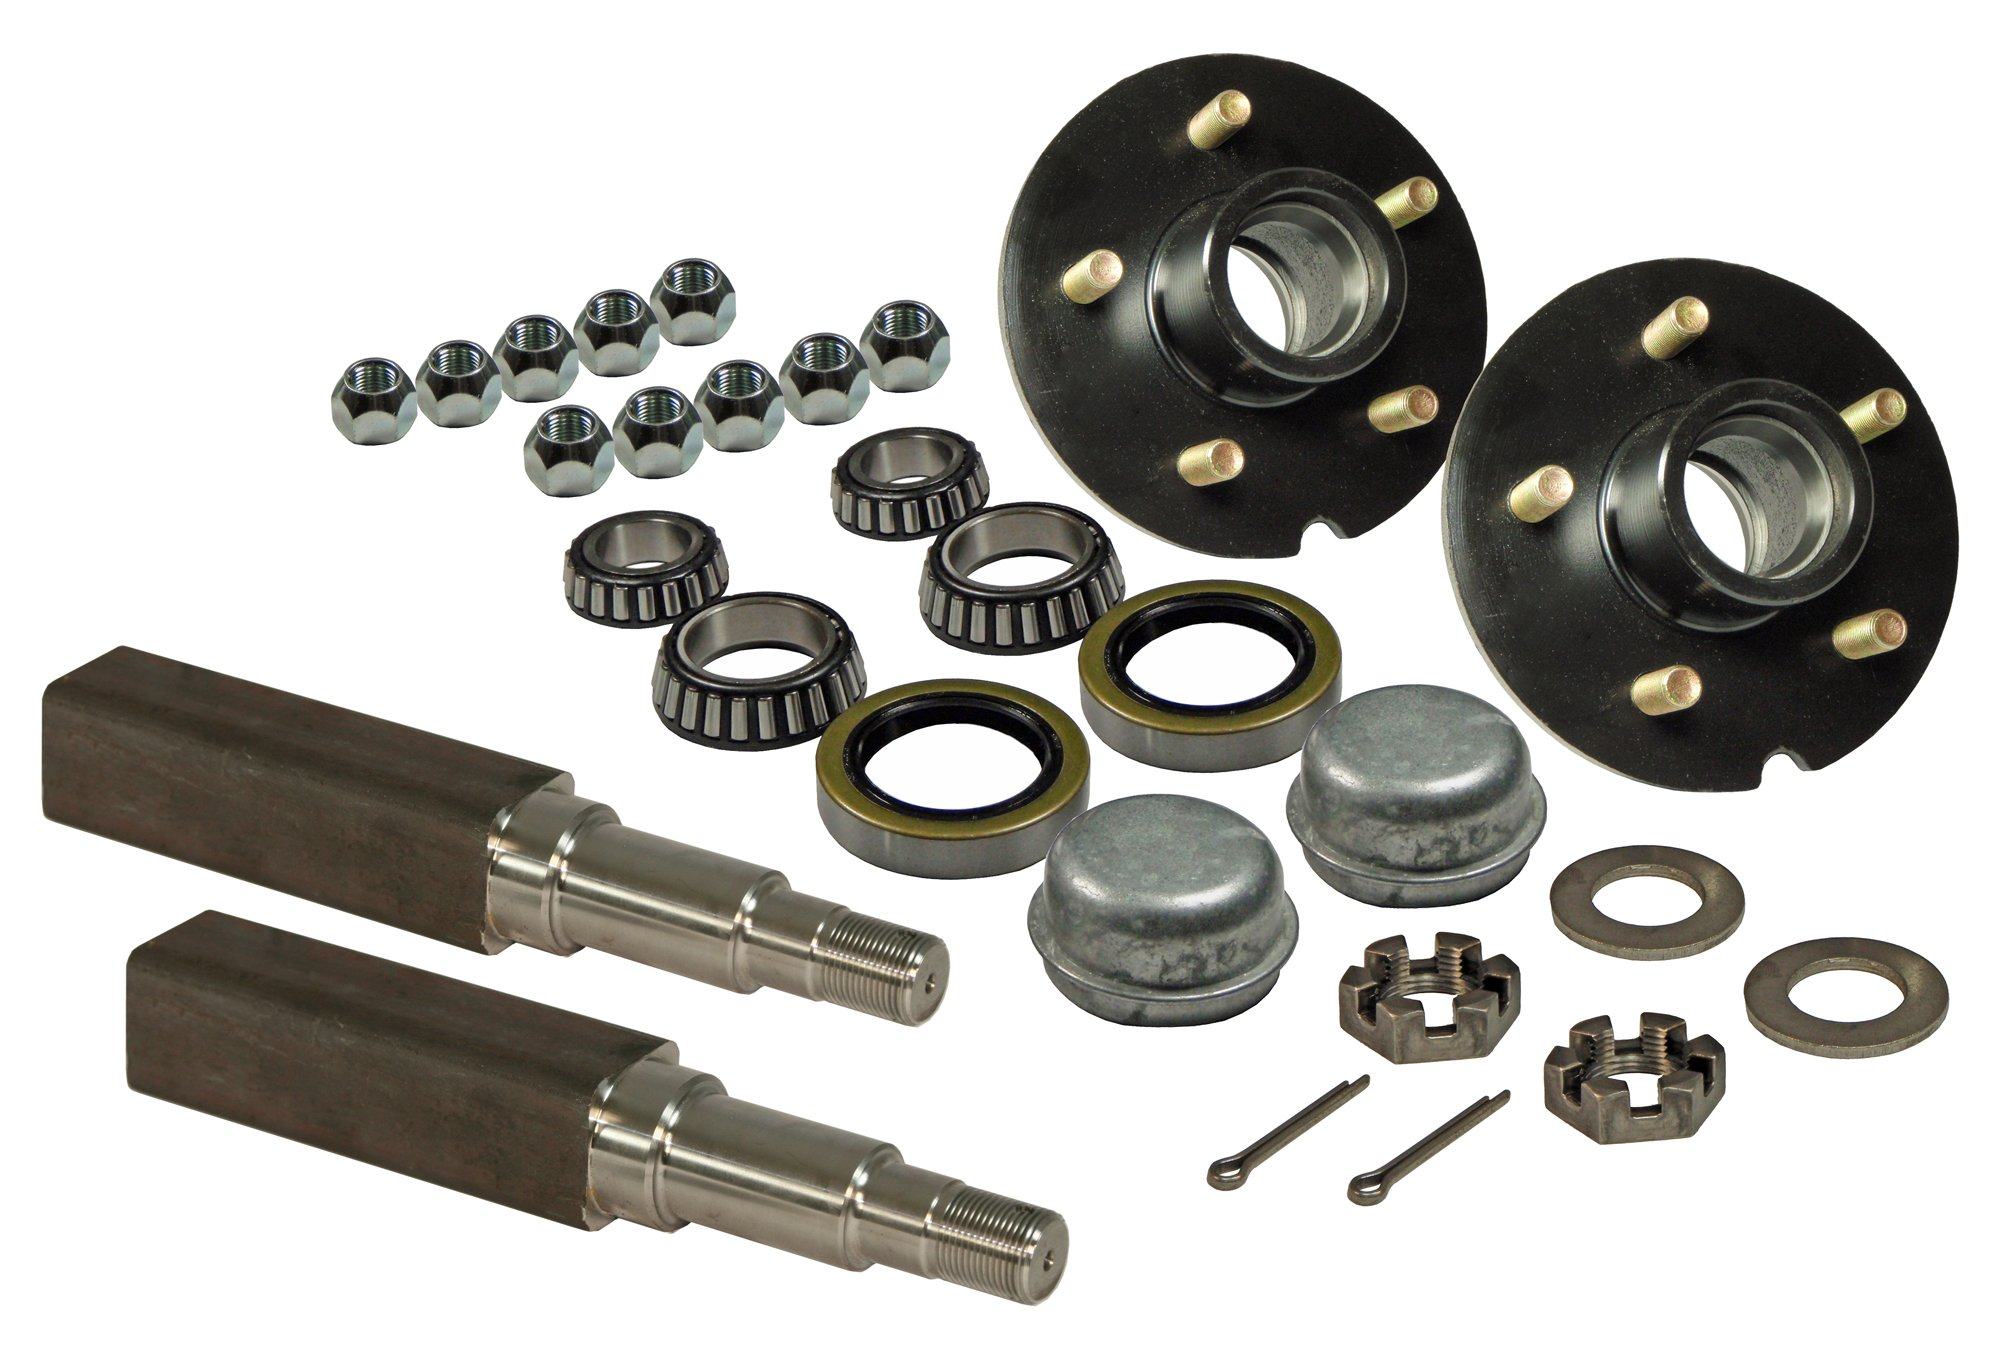 Rigid Hitch Pair of 5-Bolt on 5 Inch Hub Assembly (AKSQ-350055) Includes (2) Square Stock 1-3/8 Inch to 1-1/16 Inch Tapered Spindles & Bearings by Rigid Hitch